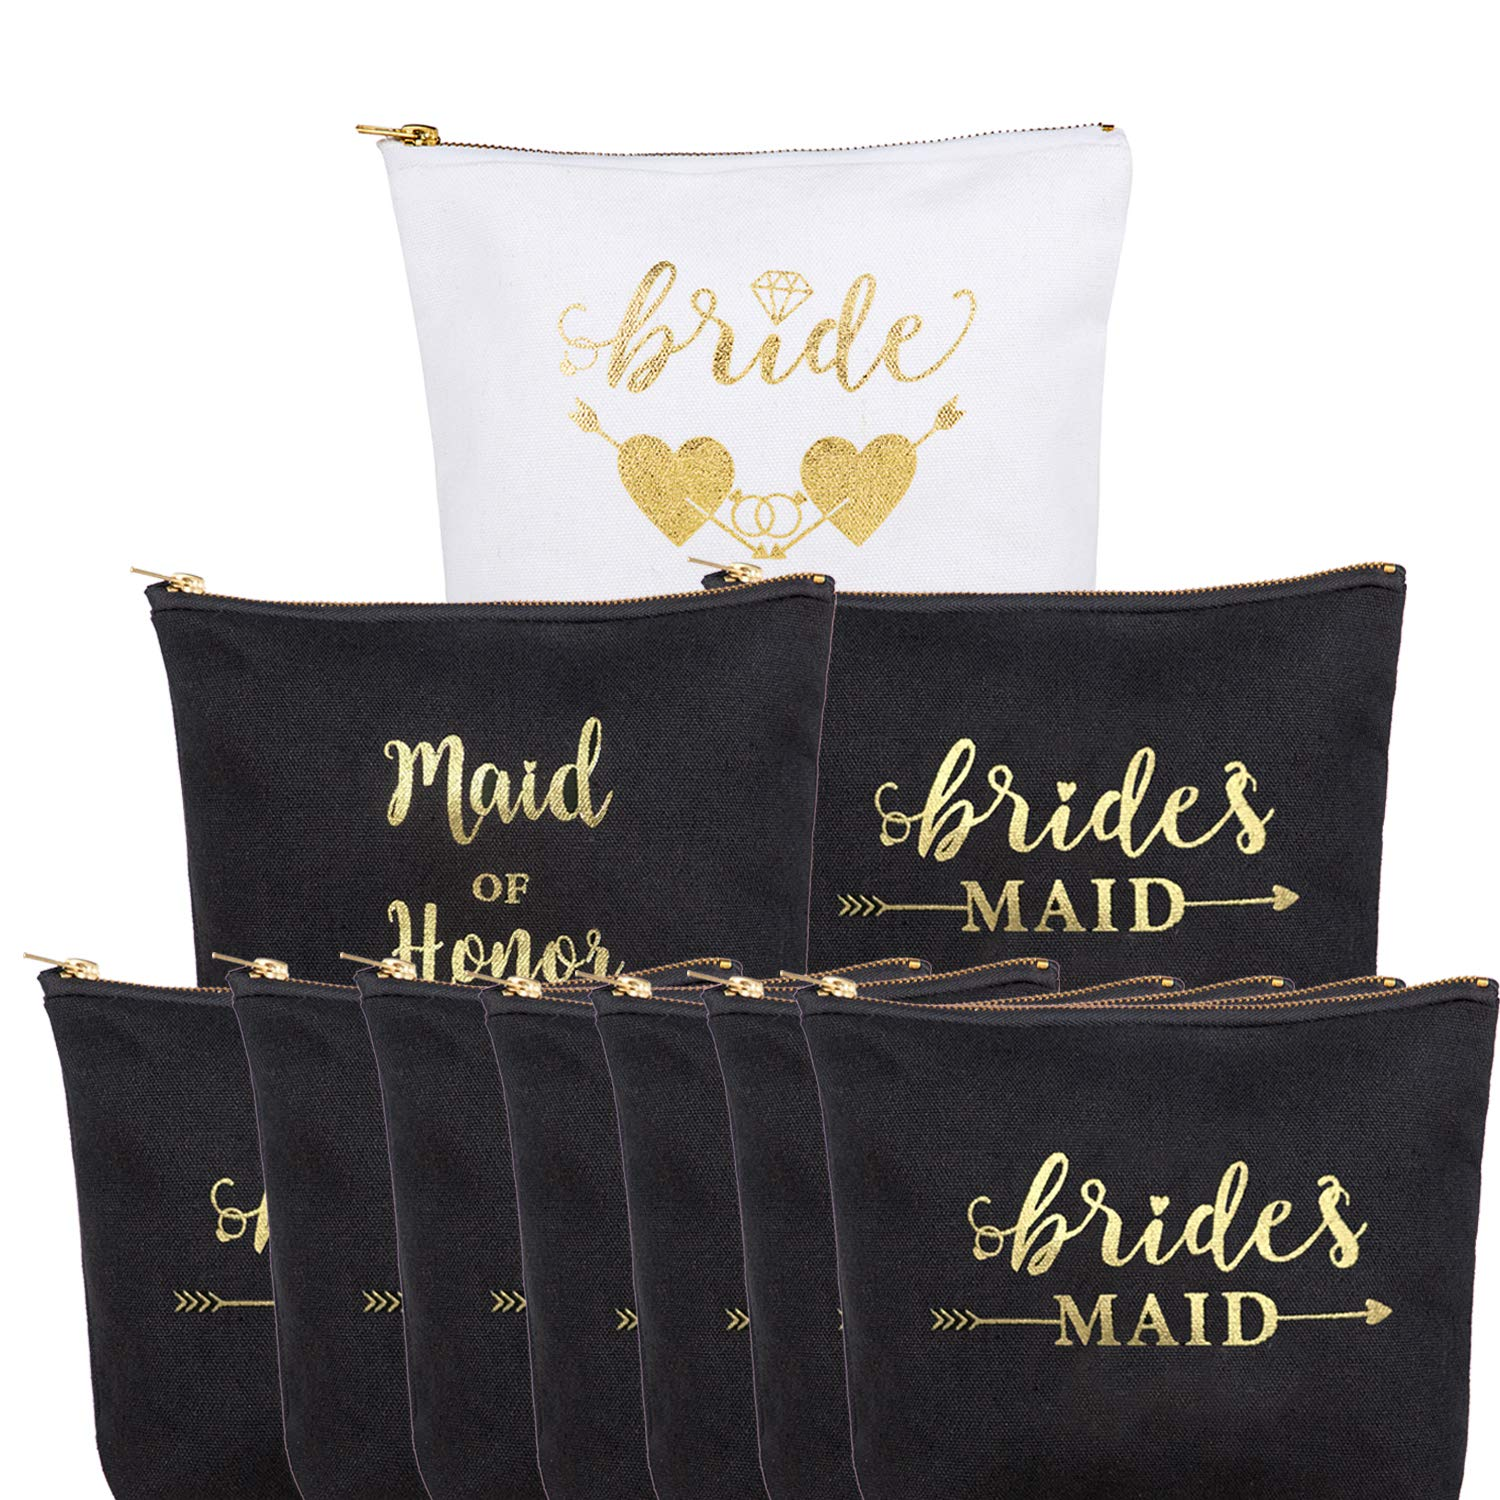 """10 Pack Bride Cotton Zipper Makeup Bag, 5.9""""x7.8""""with bottom 1.9"""",1 Bride 1 maid of honor 8 bridesmaids Gifts Bag, Multi-Purpose Bridesmaid Proposal Gifts,for Wedding Bridal Shower Bachelorette Party"""